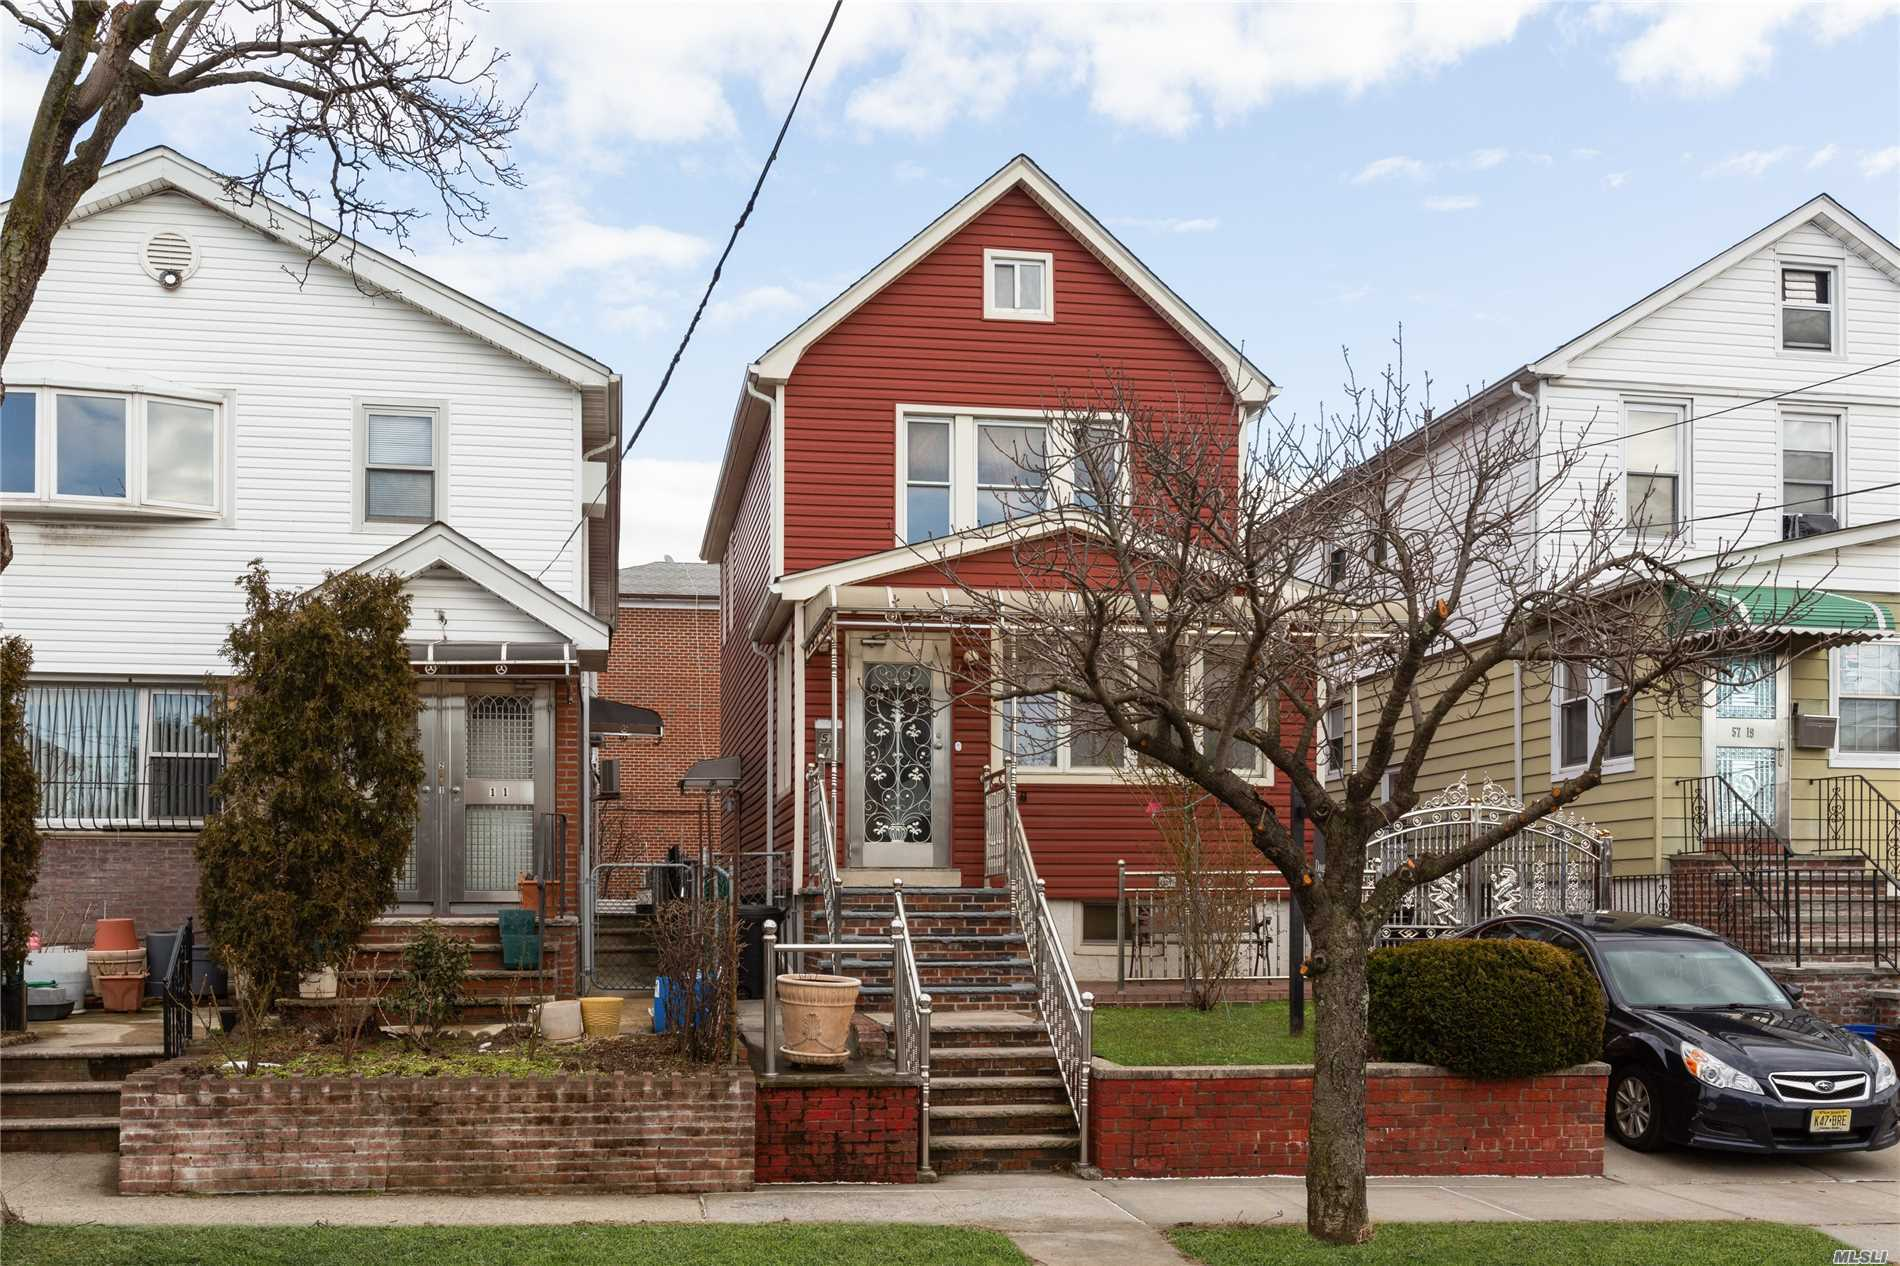 Flushing. The Property Is In Totally Renovated Excellent Condition, Beautiful Stainless Steel Gate And Front Door. Full Finished Basement With Separate Entrance. R4-1 Zoning. Great Location, Close To Everything, Hospital, Buses, Supermarket, Long Island Expressway.